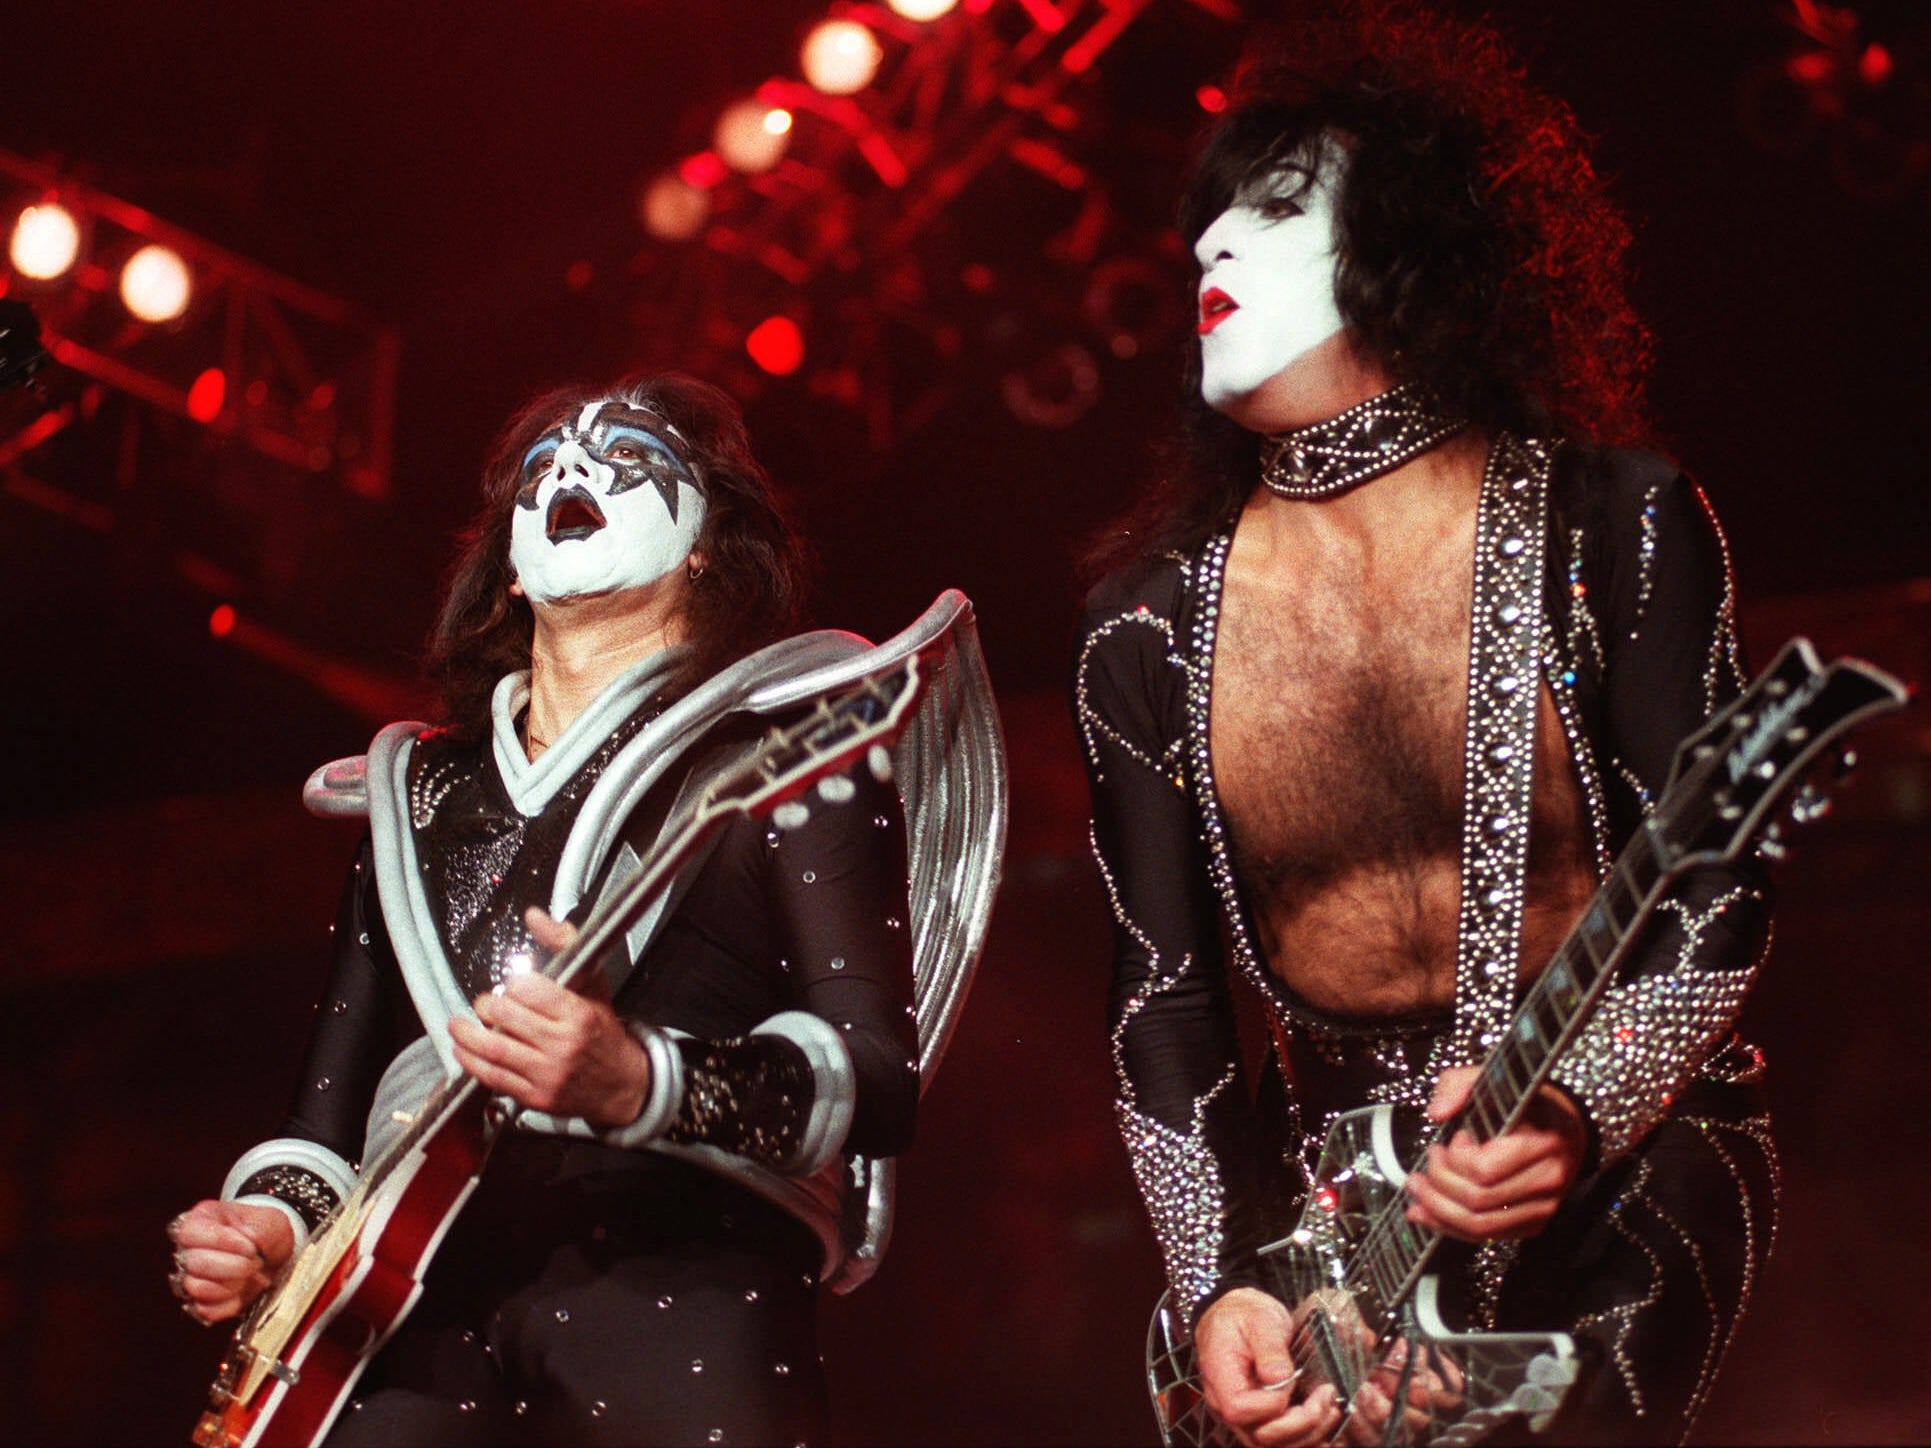 """Paul Stanley (right) and Ace Frehley of the rock band Kiss perform during their sold-out Halloween concert at Dodger Stadium in Los Angeles on Saturday, Oct. 31, 1998. The concert marked the debut of their """"Psycho Circus"""" tour."""